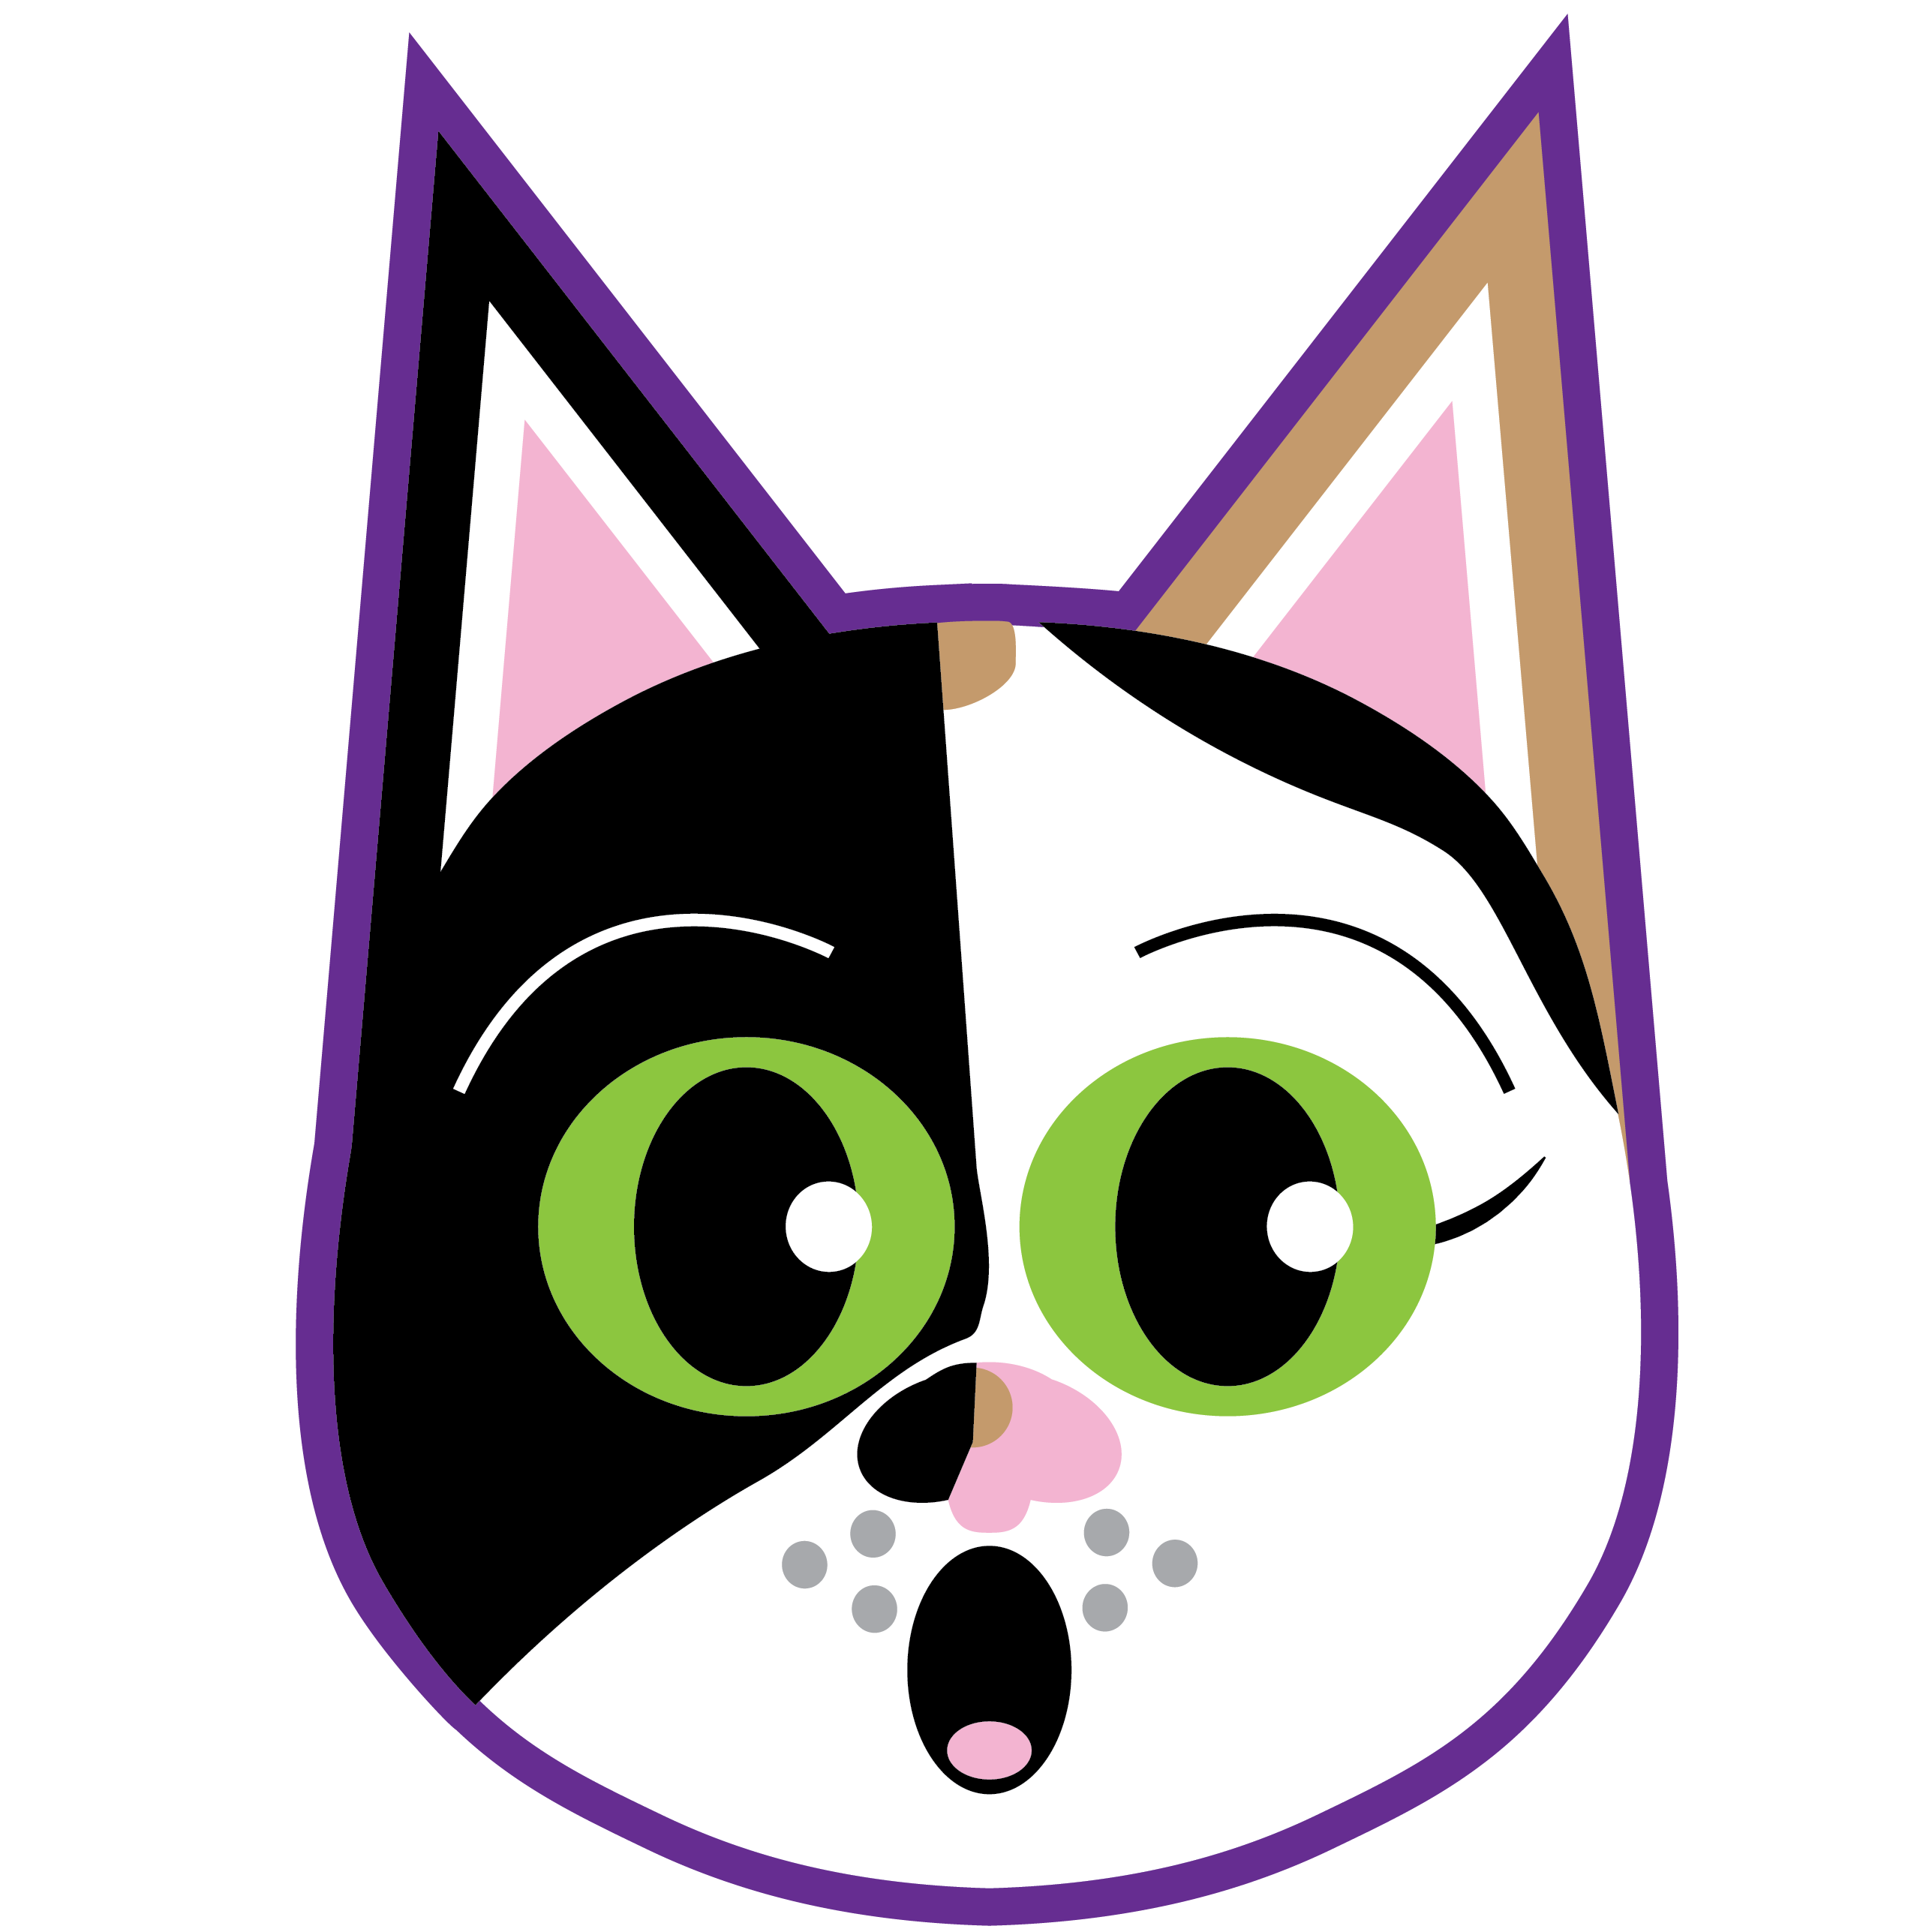 Priscilly Kitty messages sticker-10